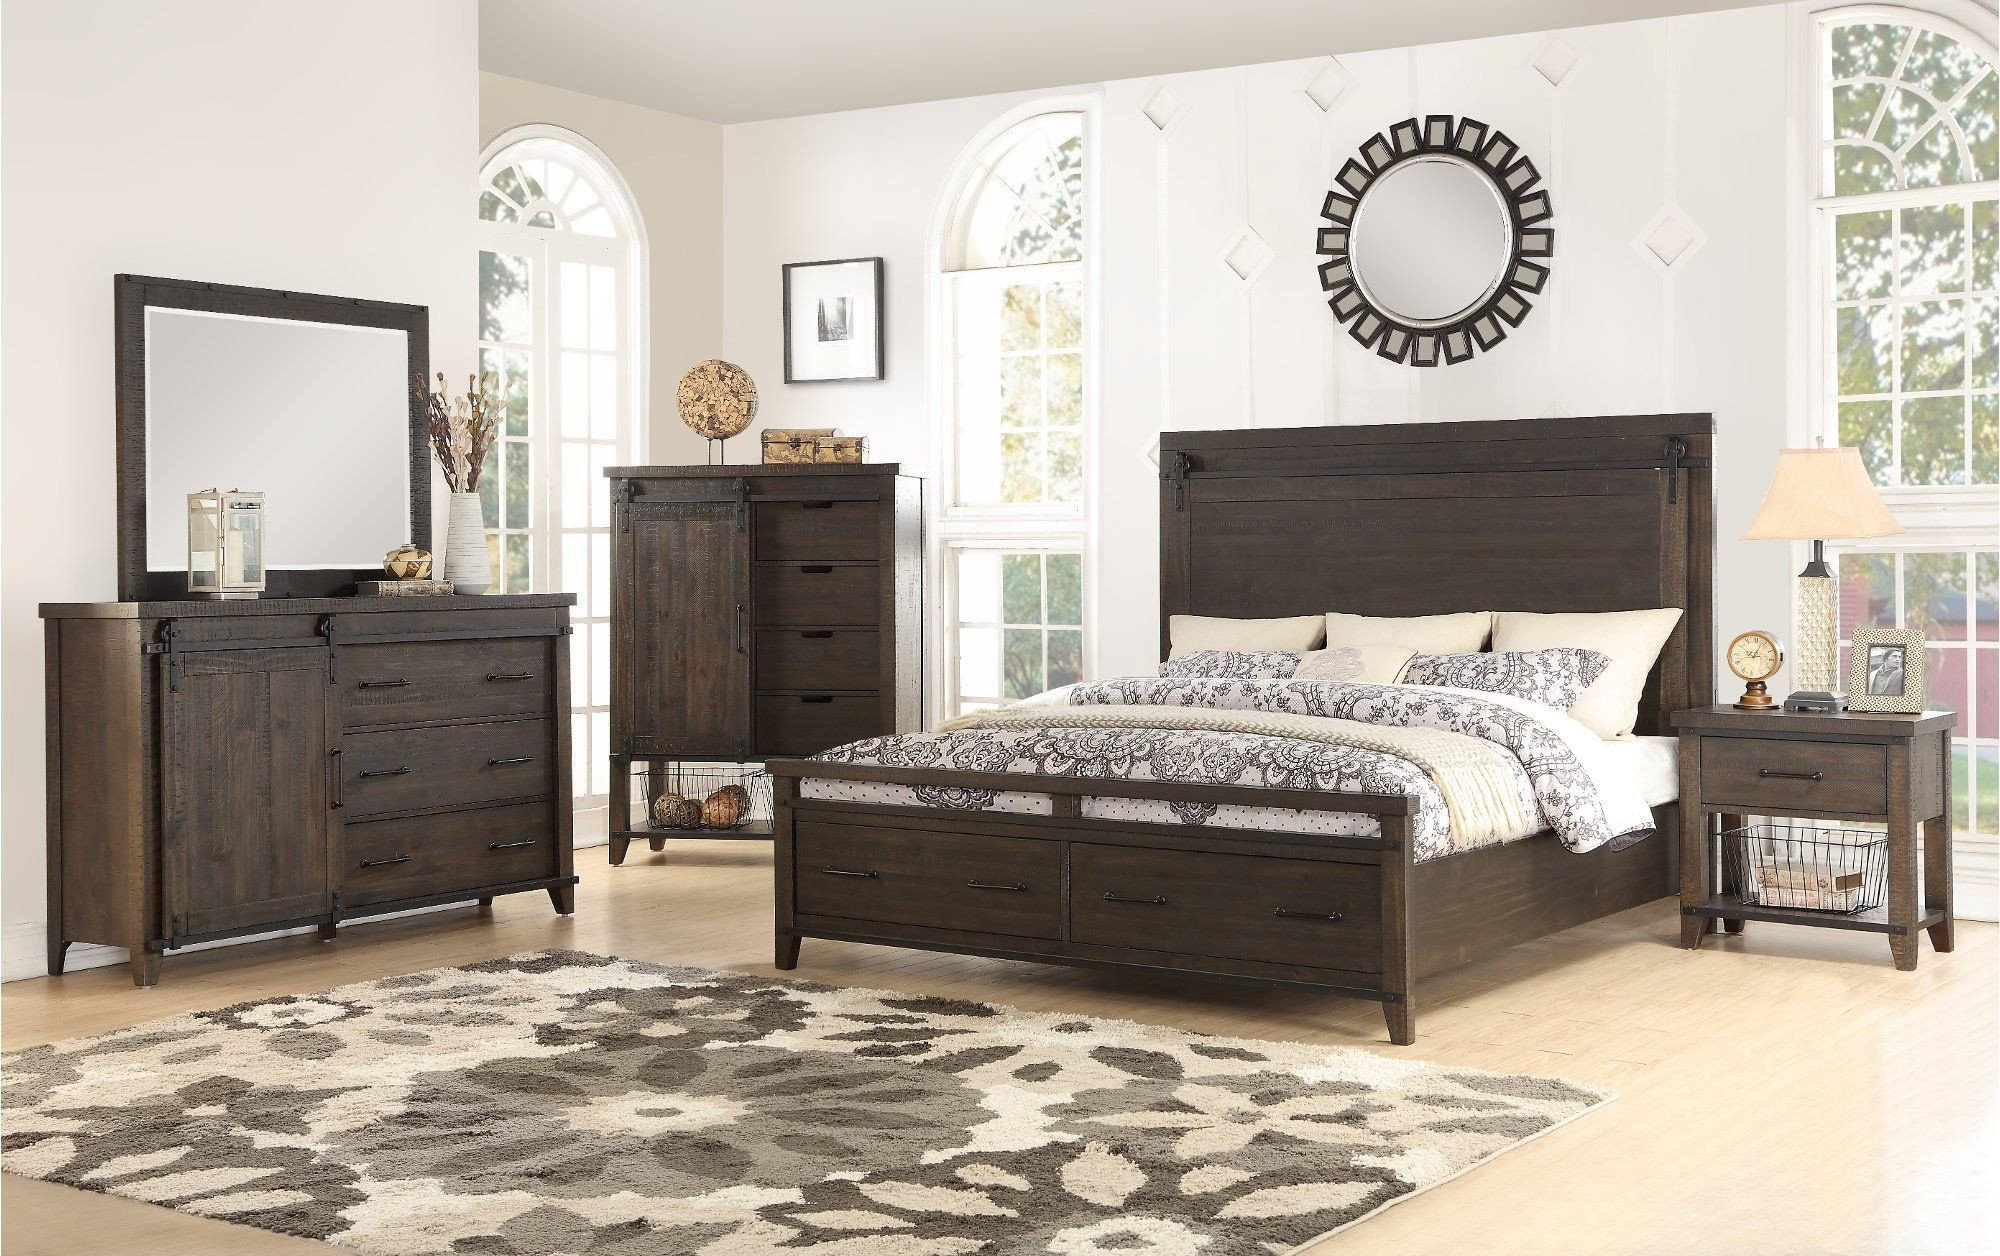 Rustic White Bedroom Set Beautiful Rustic Contemporary Brown 4 Piece King Bedroom Set Montana